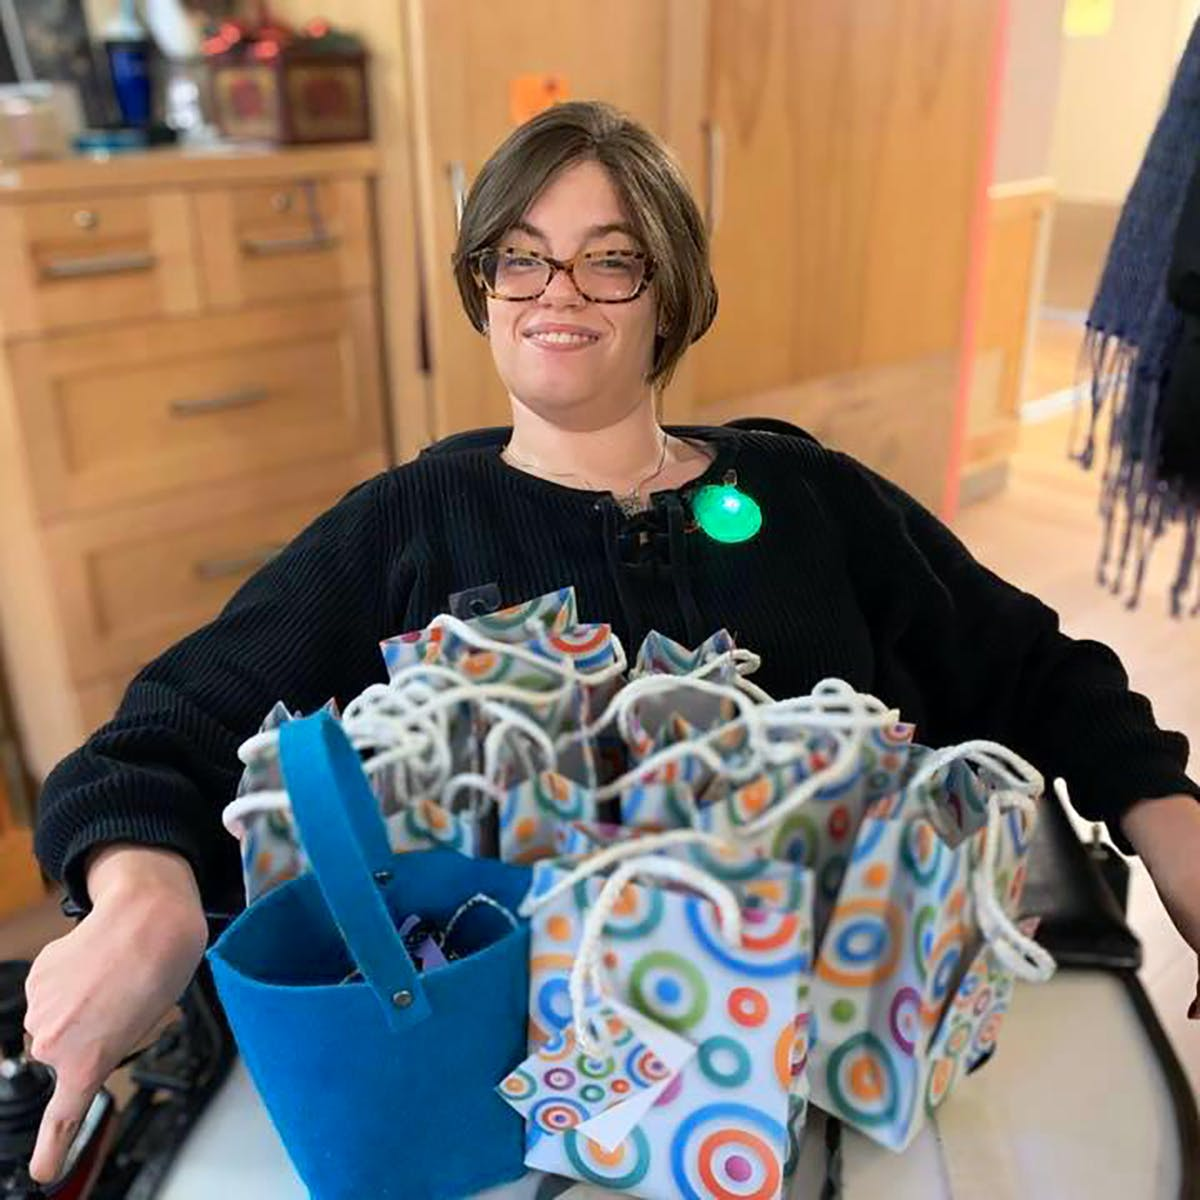 Vicky Levack, 29, a resident at Arborstone Enhanced Care nursing home in Halifax, says the province must do more to protect disabled people living in institutions from the threat of COVID-19.